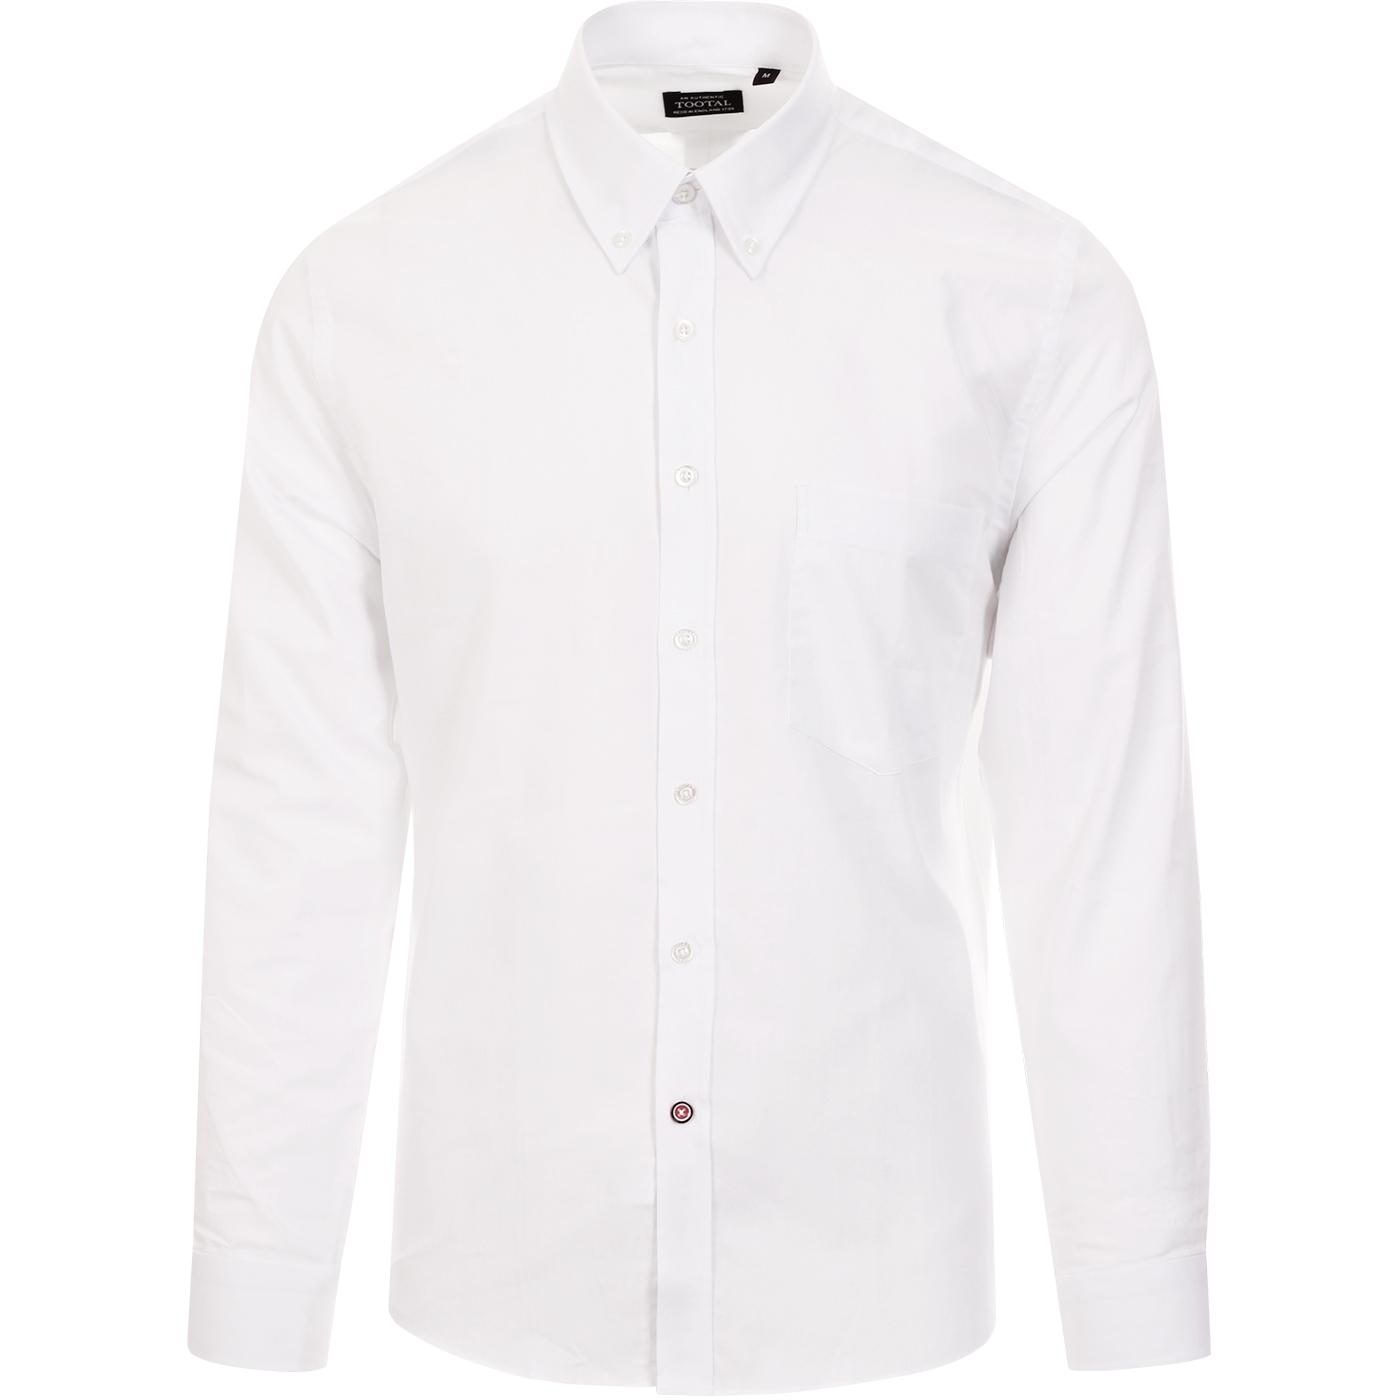 TOOTAL 60s Mod Button Down Oxford Shirt (White)